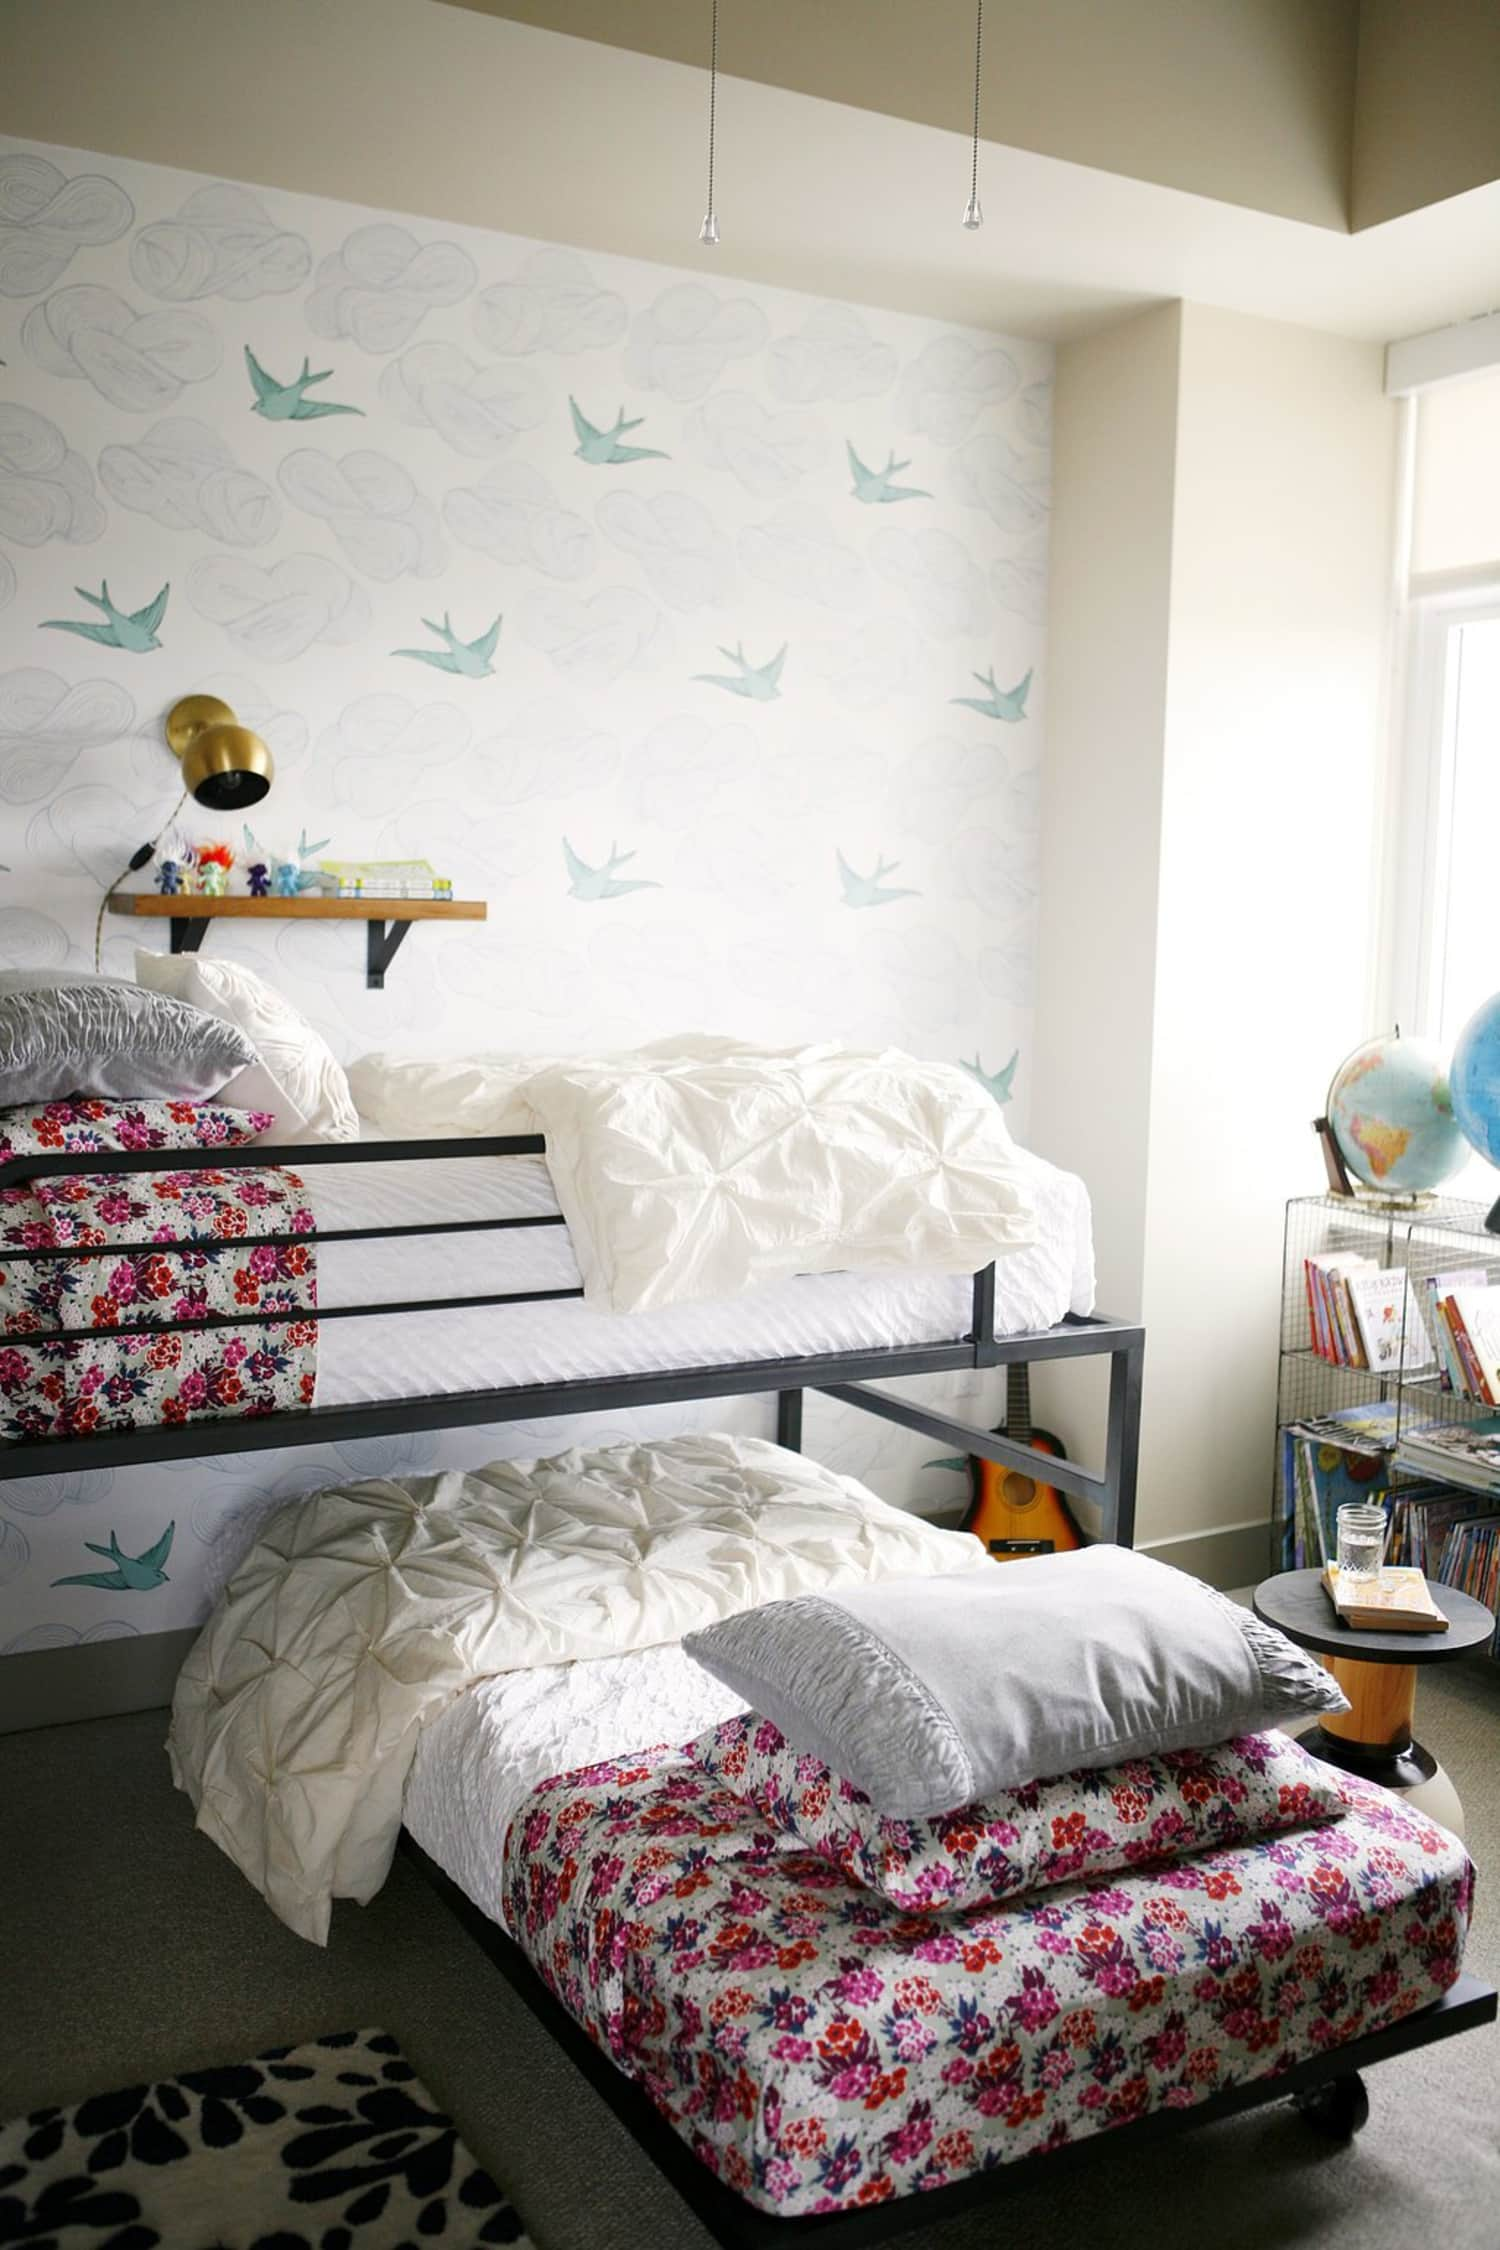 3 Ways to Spruce Up a Boring Rental